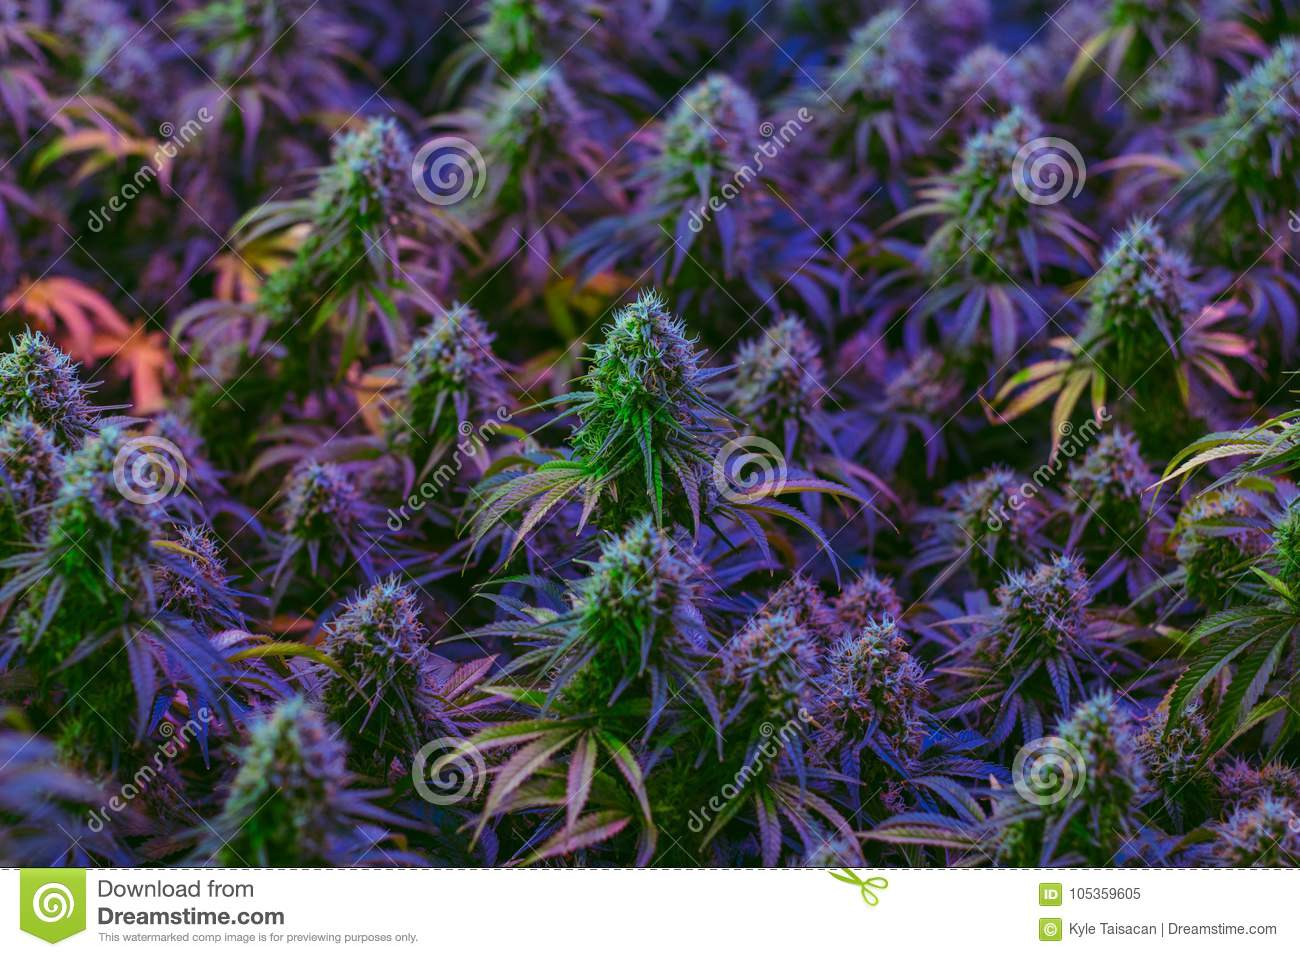 Very colorful marijuana plants being cultivated for alternative healthcare use